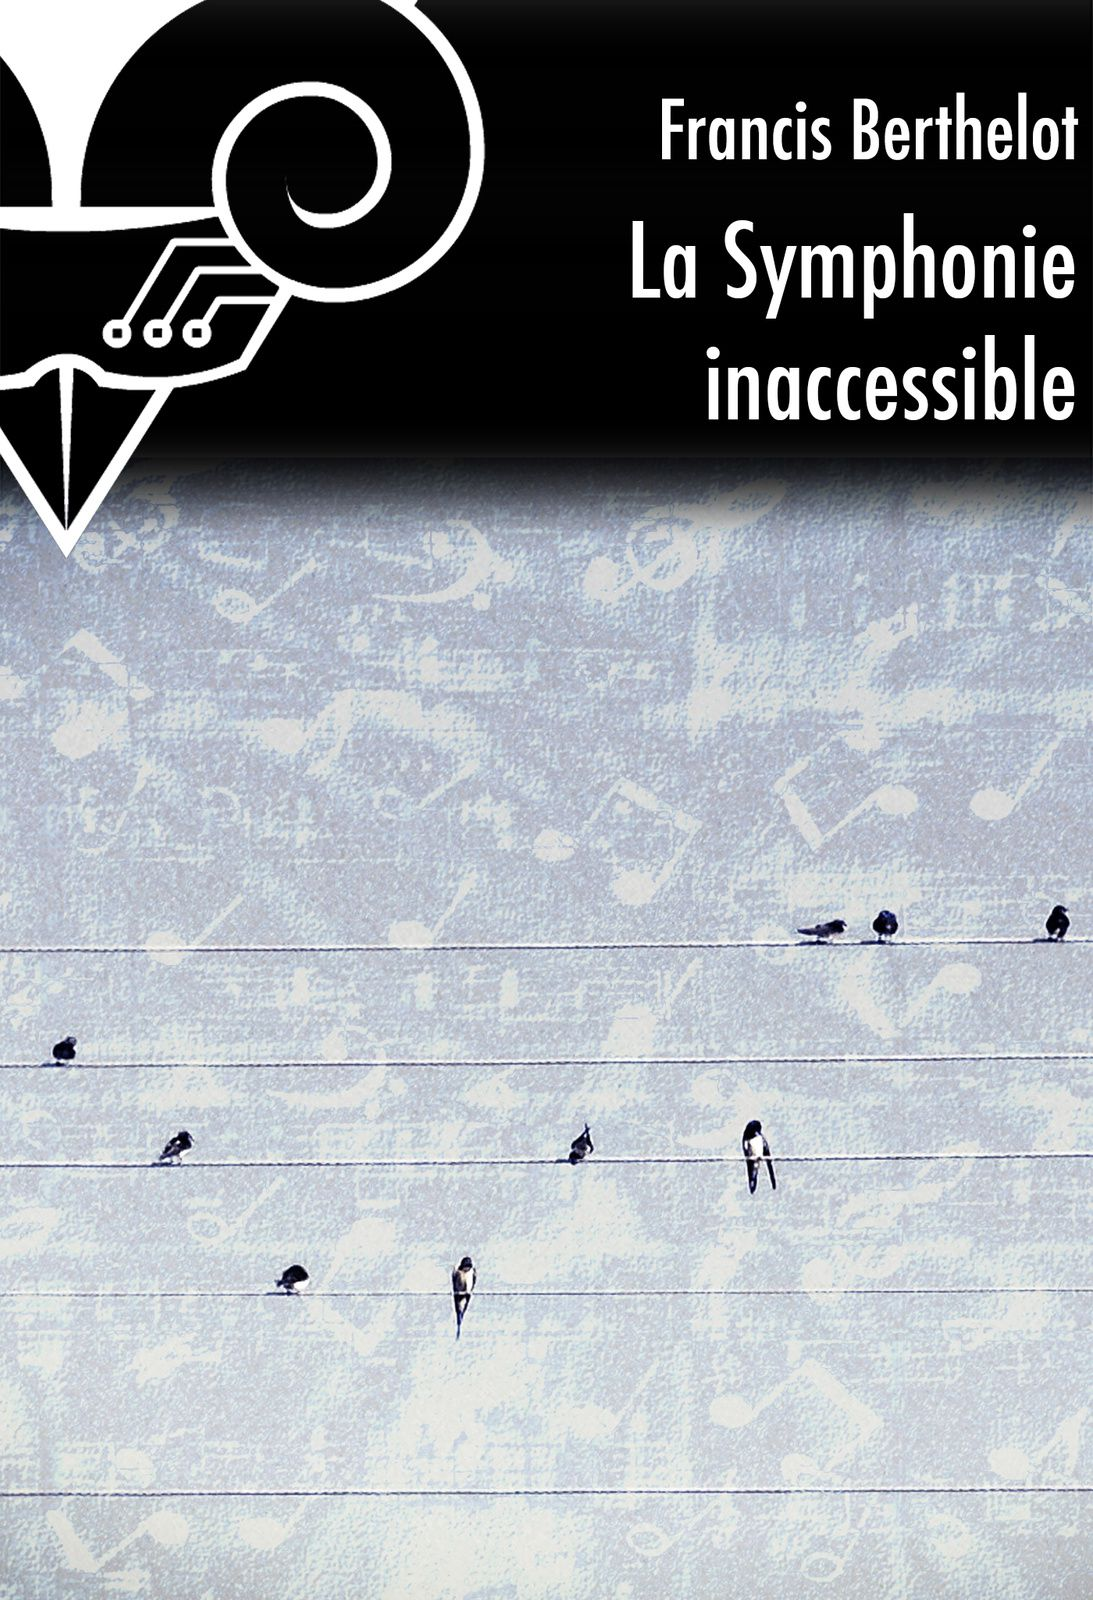 La Symphonie inaccessible - Francis BERTHELOT (2006), Le Bélial', 2015, 21 pages